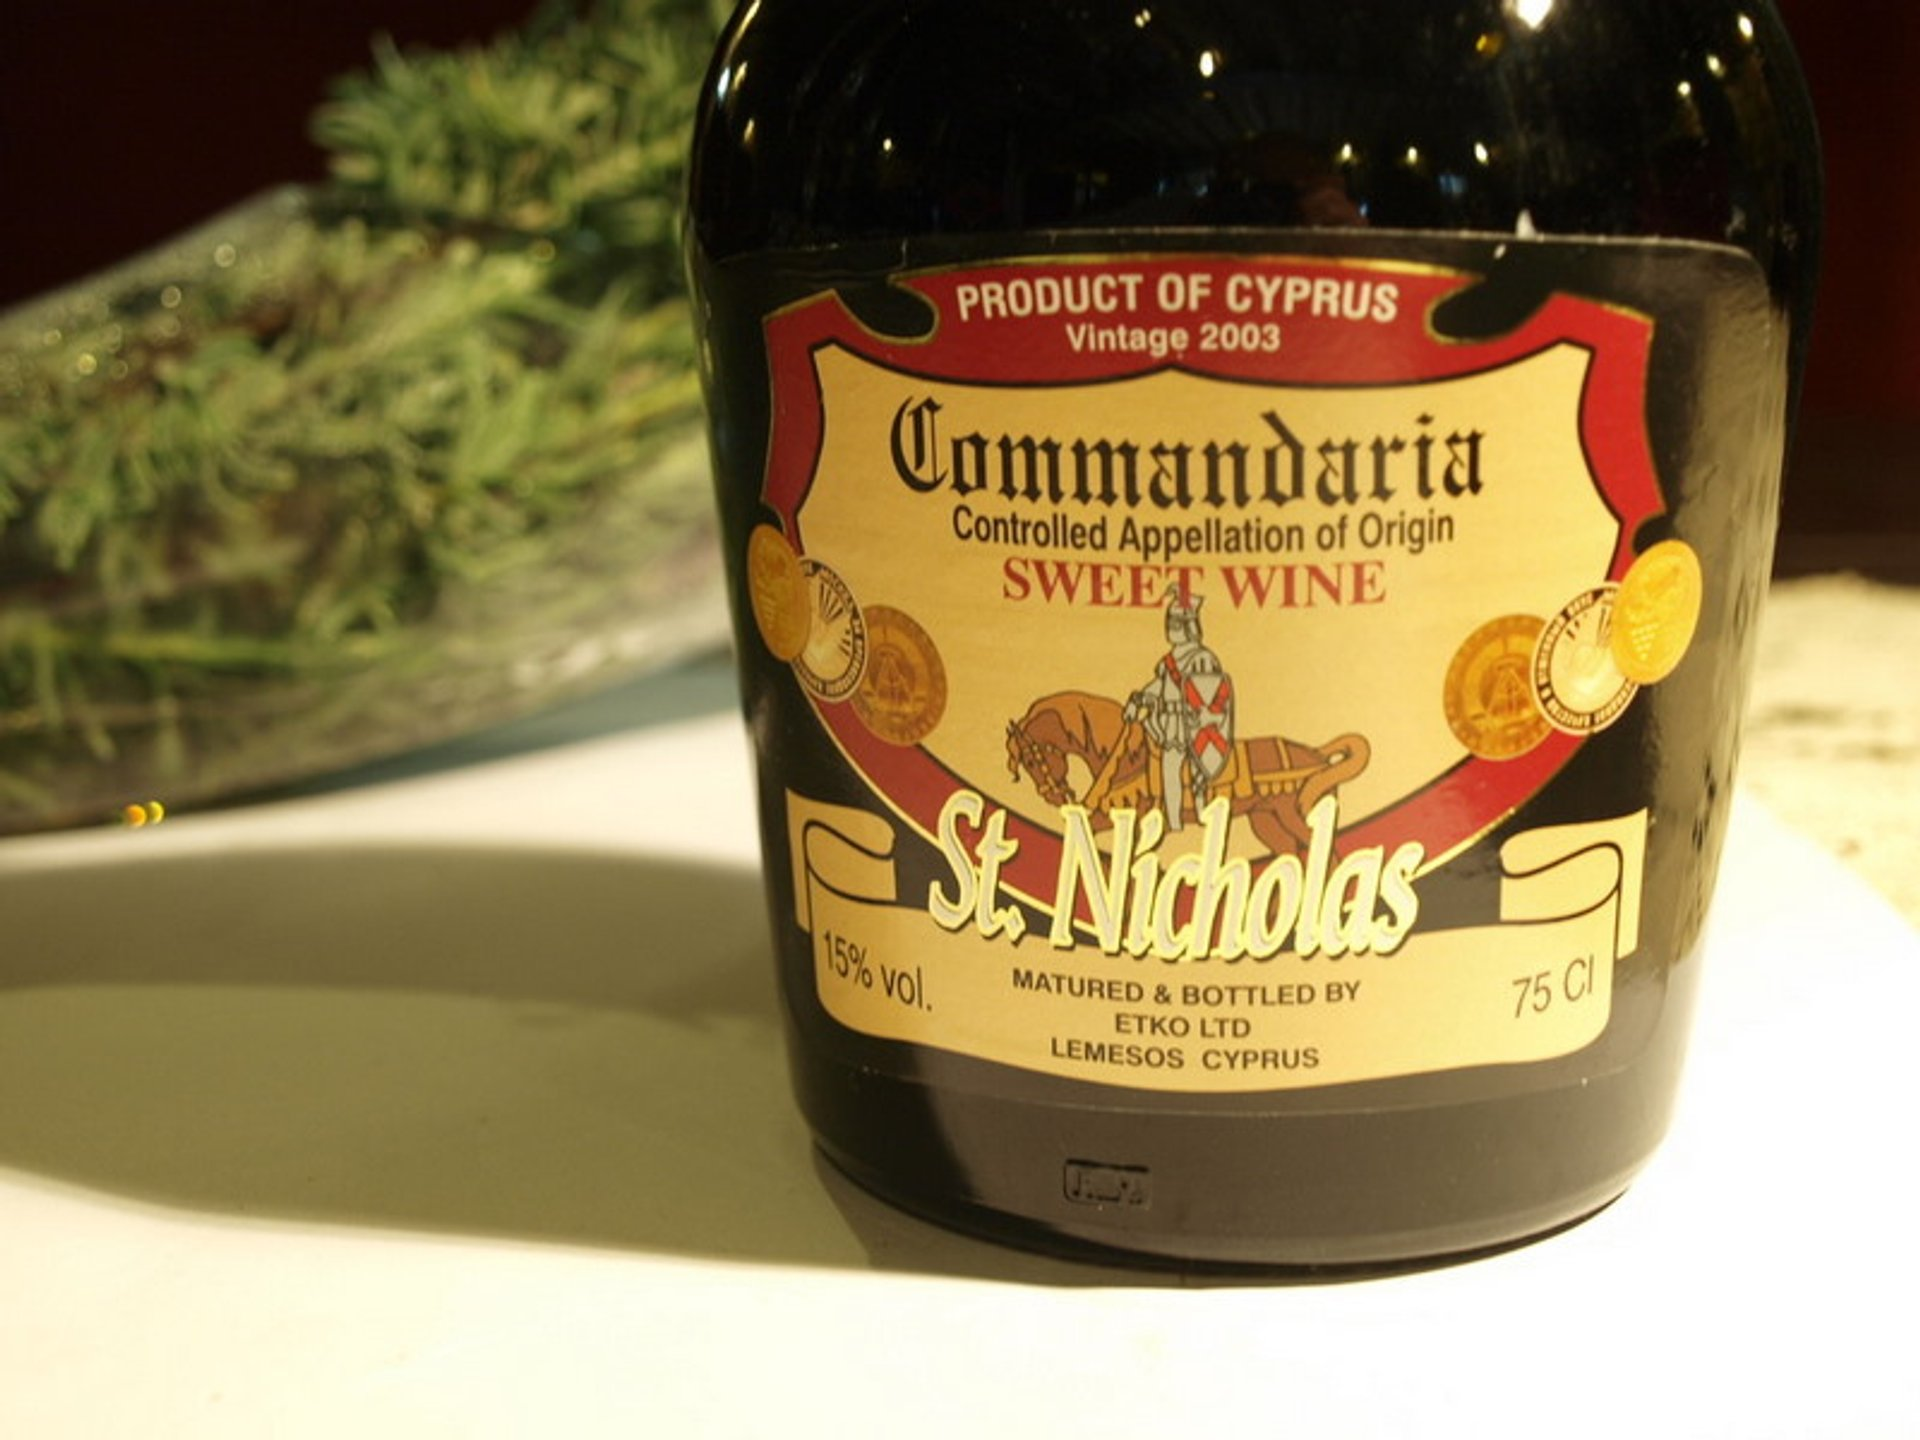 Commandaria Wine in Cyprus - Best Season 2020